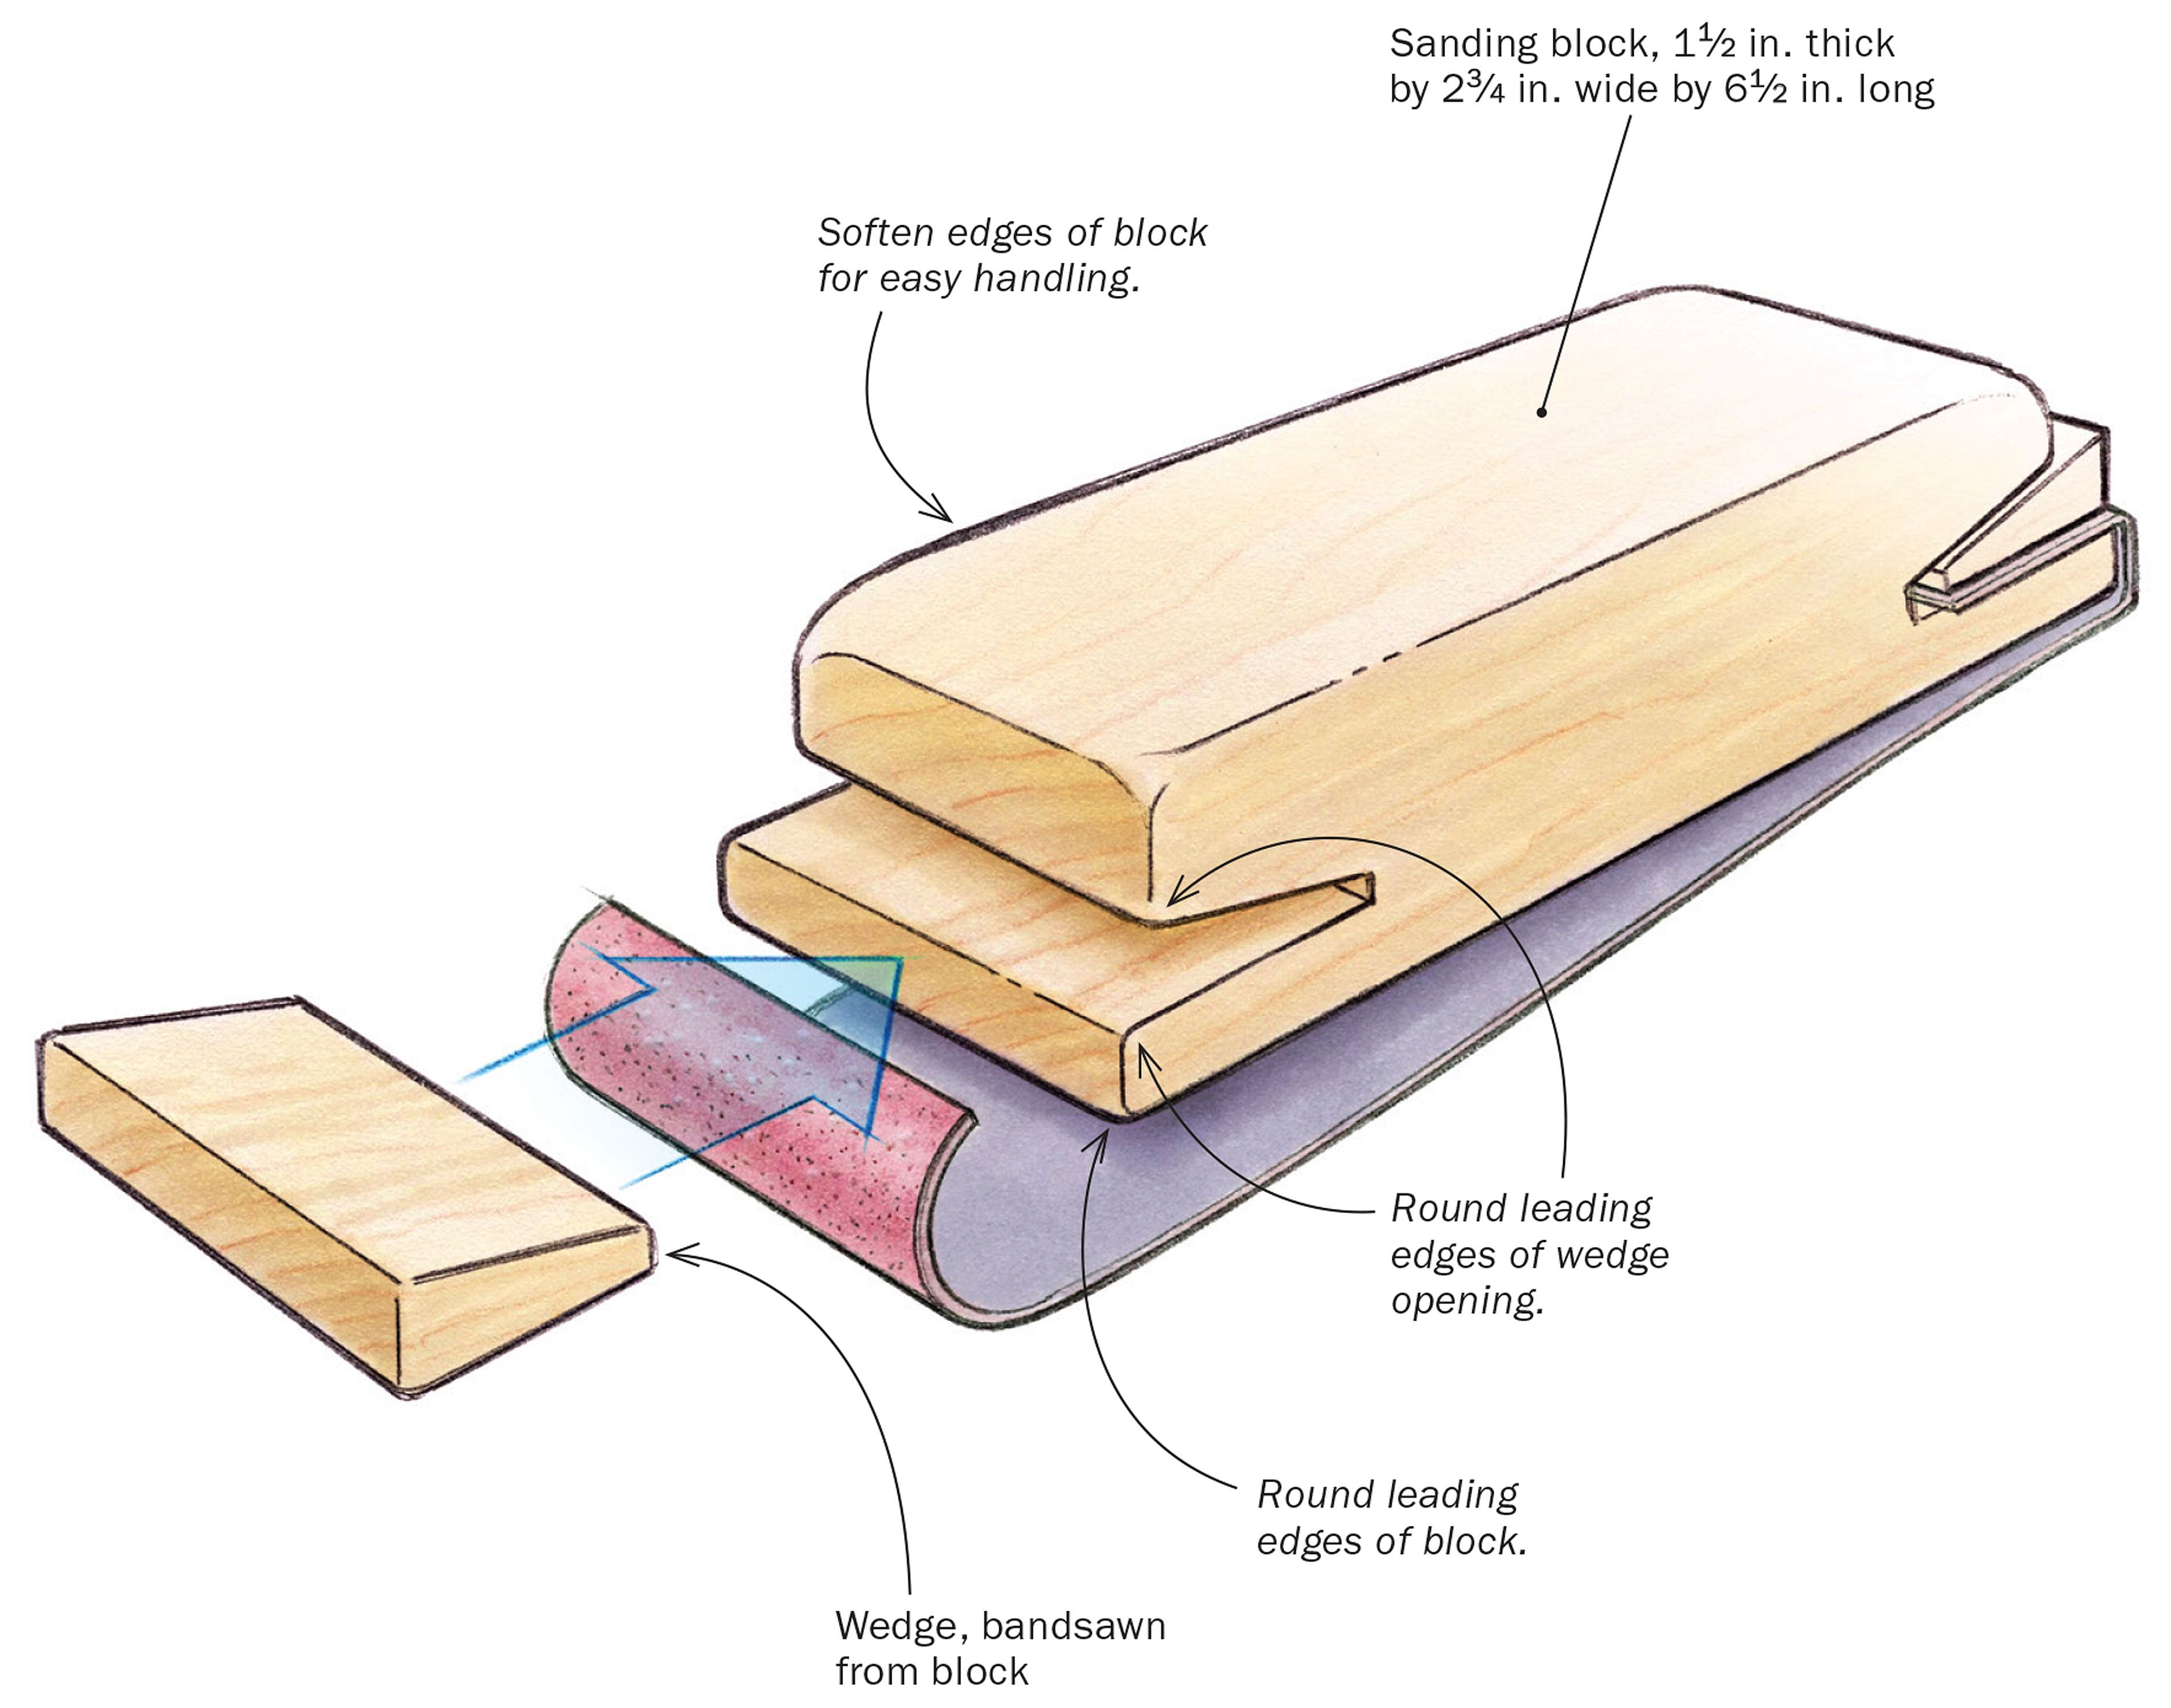 sanding block is quick to make and easy to use: a sanding